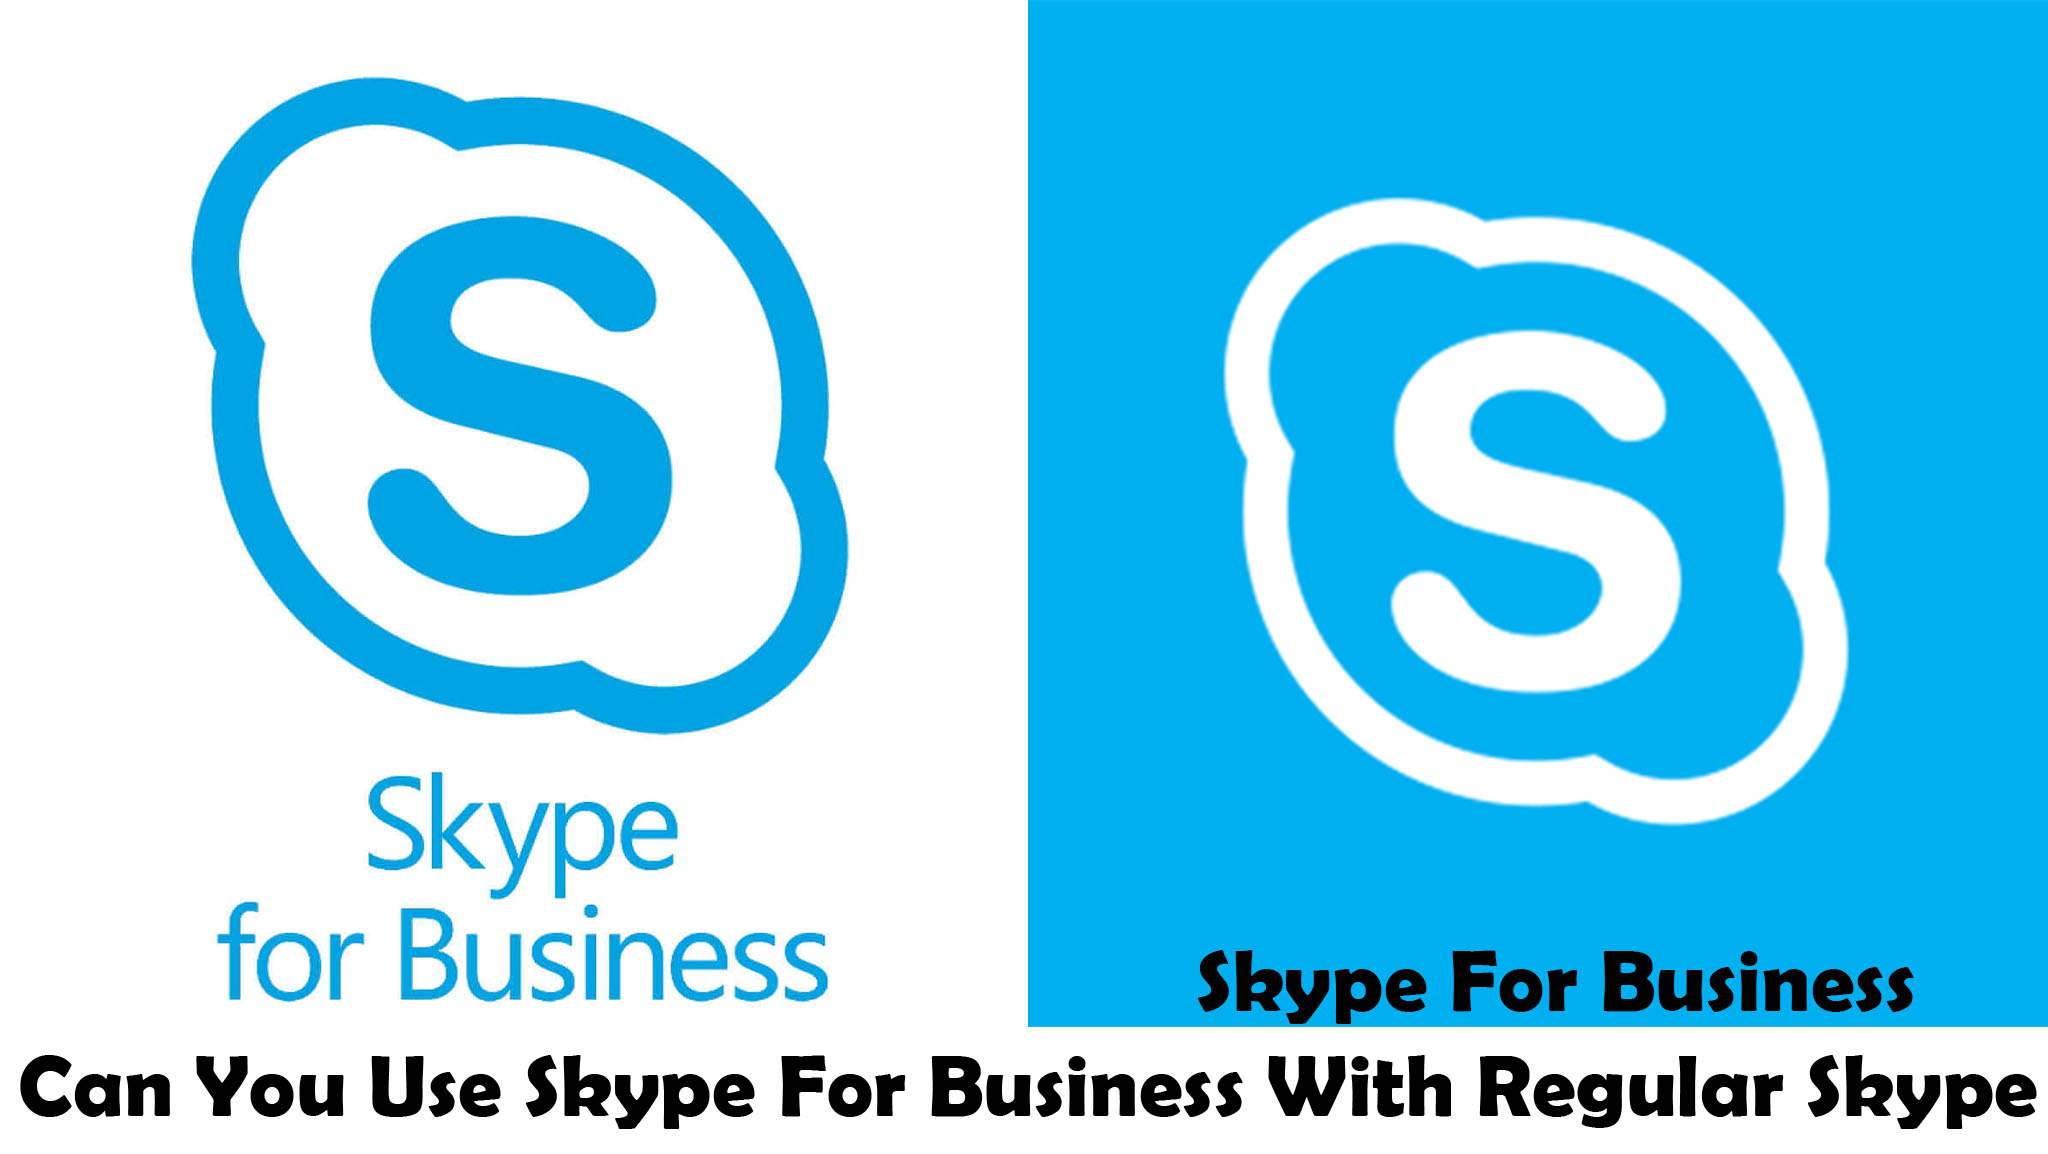 Skype For Business - Can You Use Skype For Business With Regular Skype